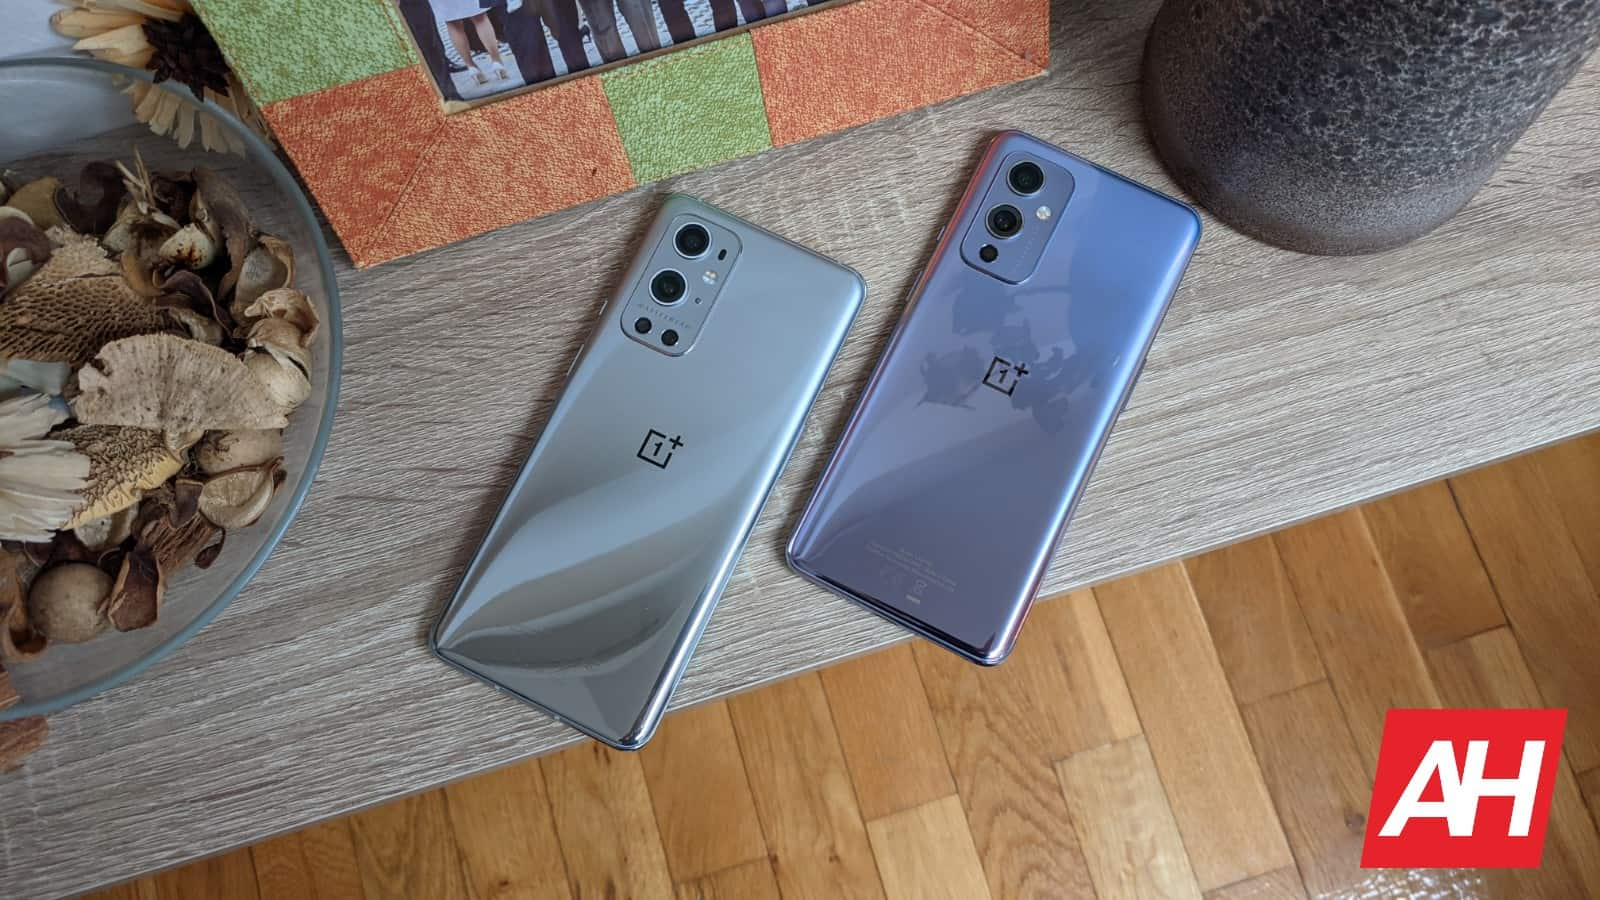 AH OnePlus 9 and 9 Pro KL image 20